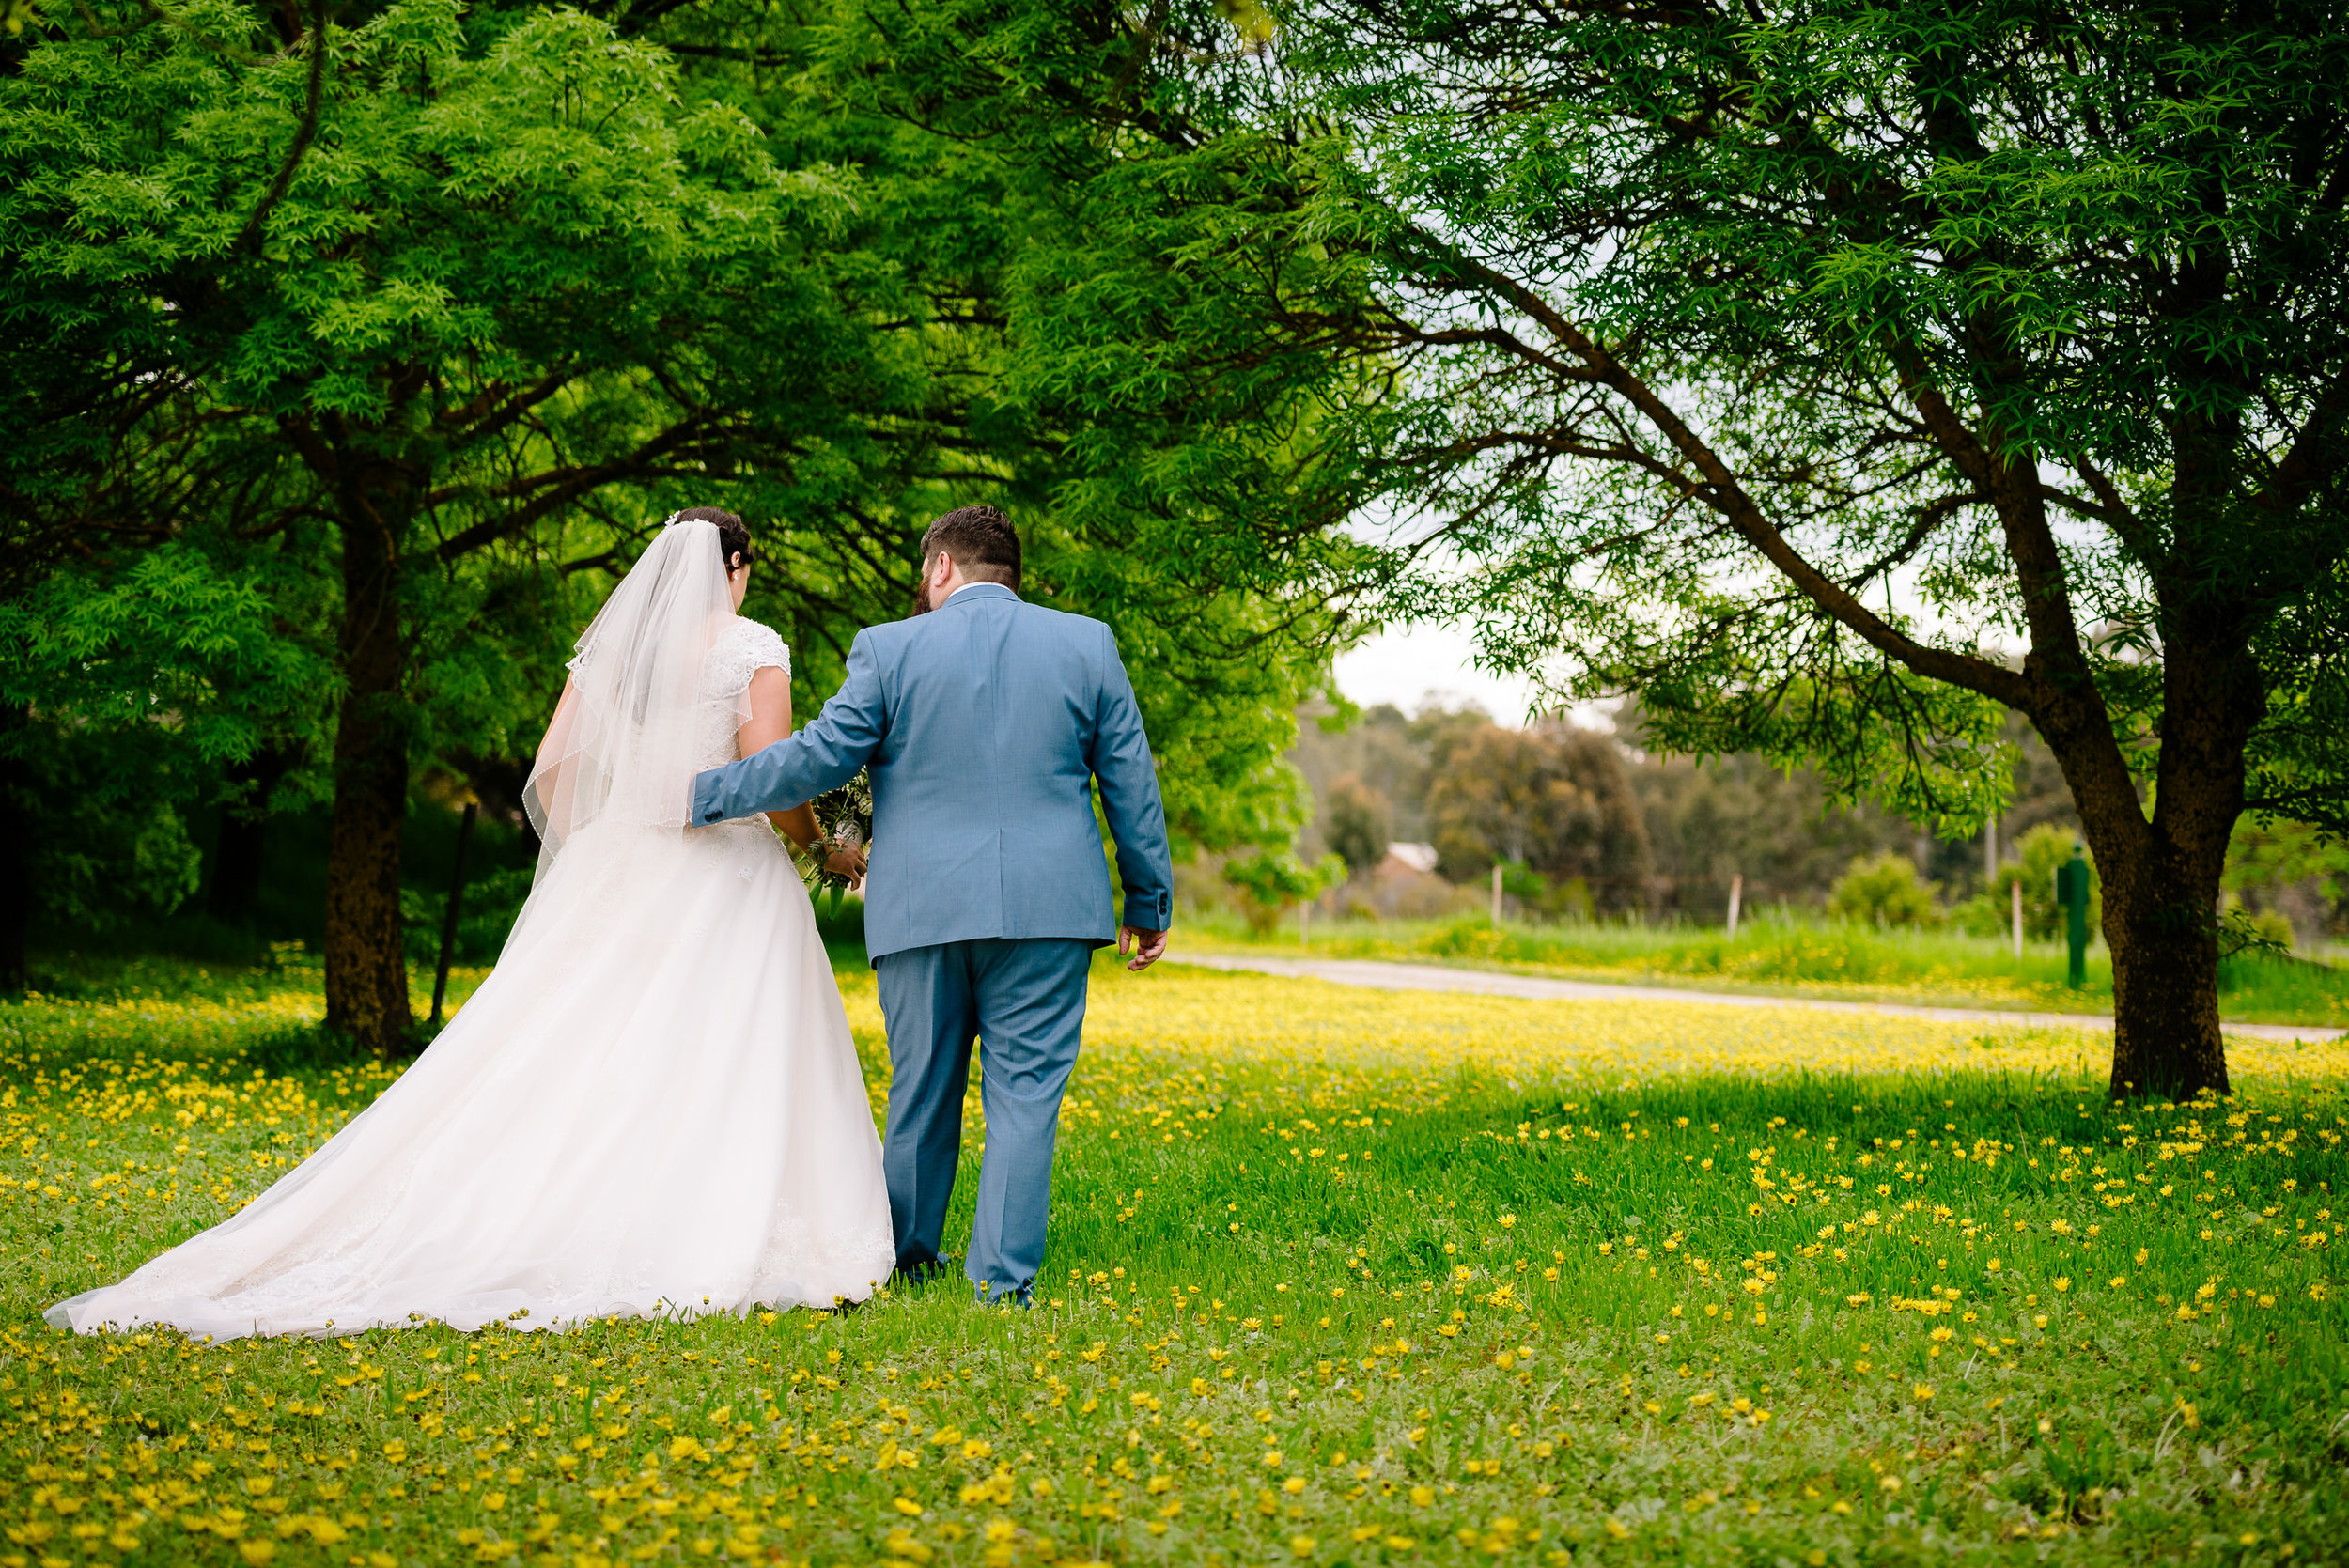 Chateau_Dore_Wedding_Photography_Justin_and_Jim-165.JPG